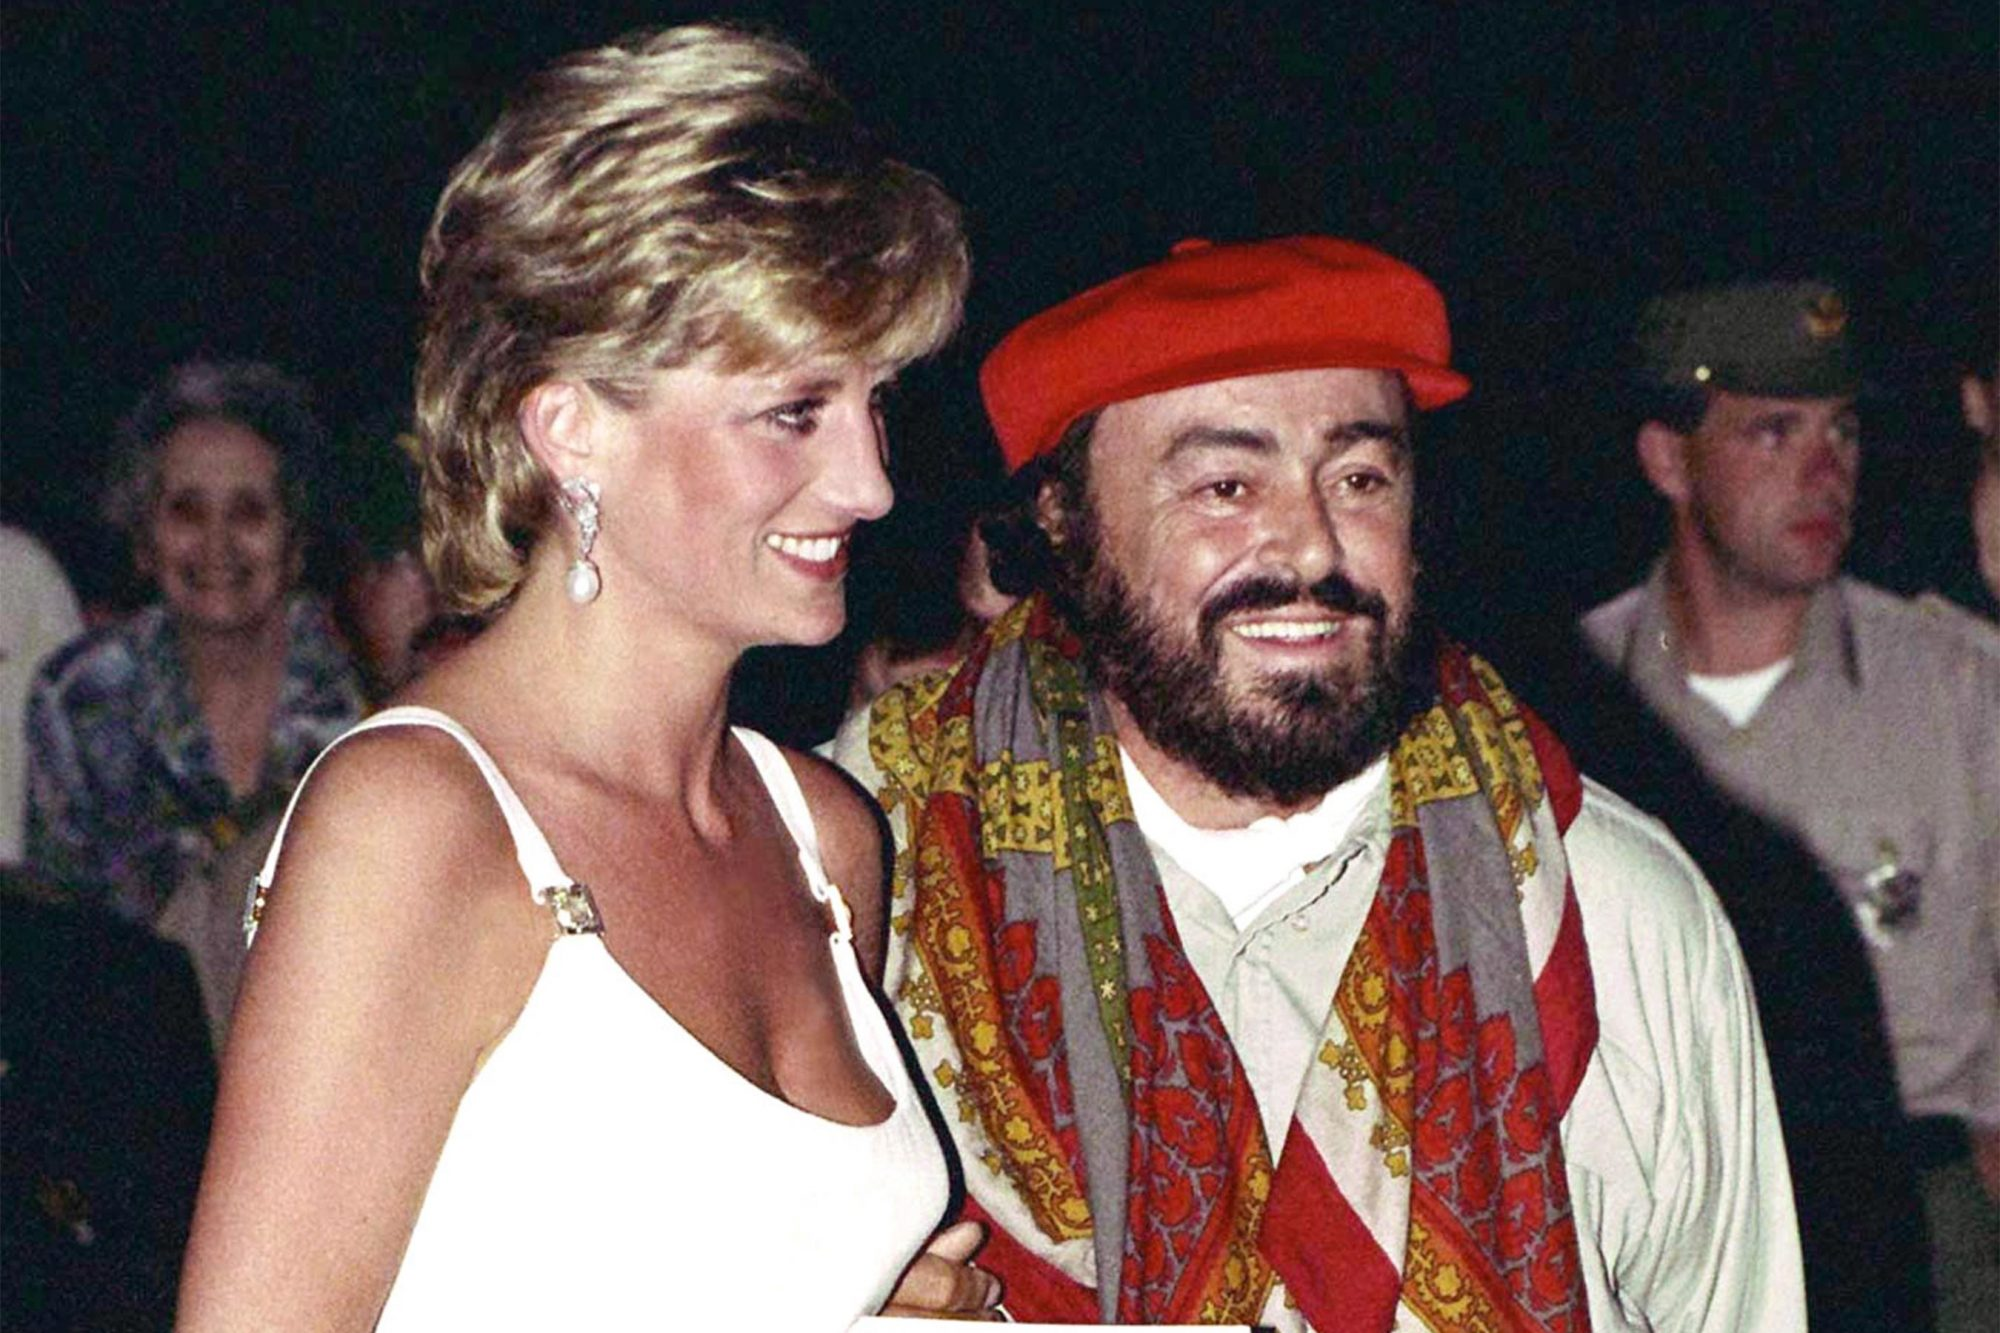 MODENA, ITALY - SEPTEMBER 12: Princess Of Wales Greeted By Pavarotti On Arrival At Concert To Raise Money For Bosnian Children. (Photo by Tim Graham/Getty Images)